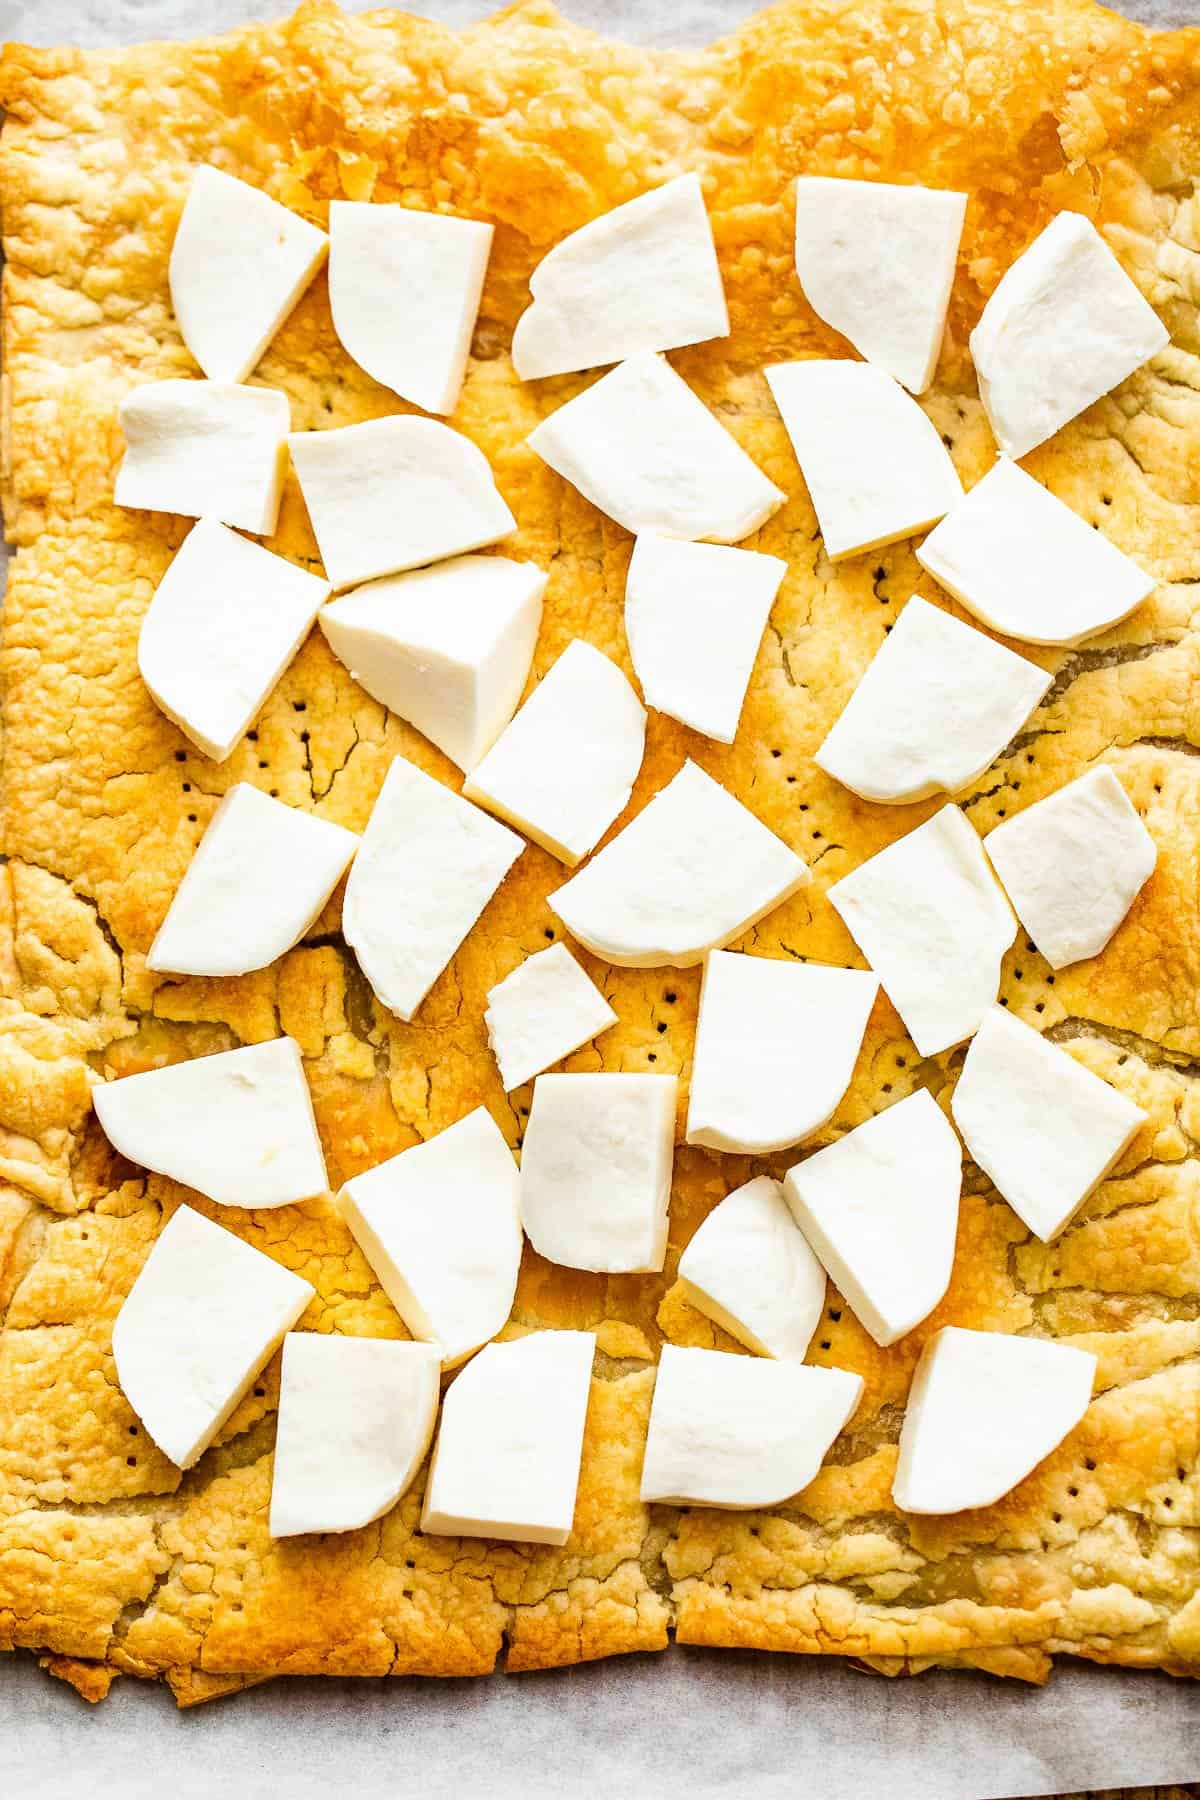 puff pastry topped with fresh chunks of mozzarella cheese